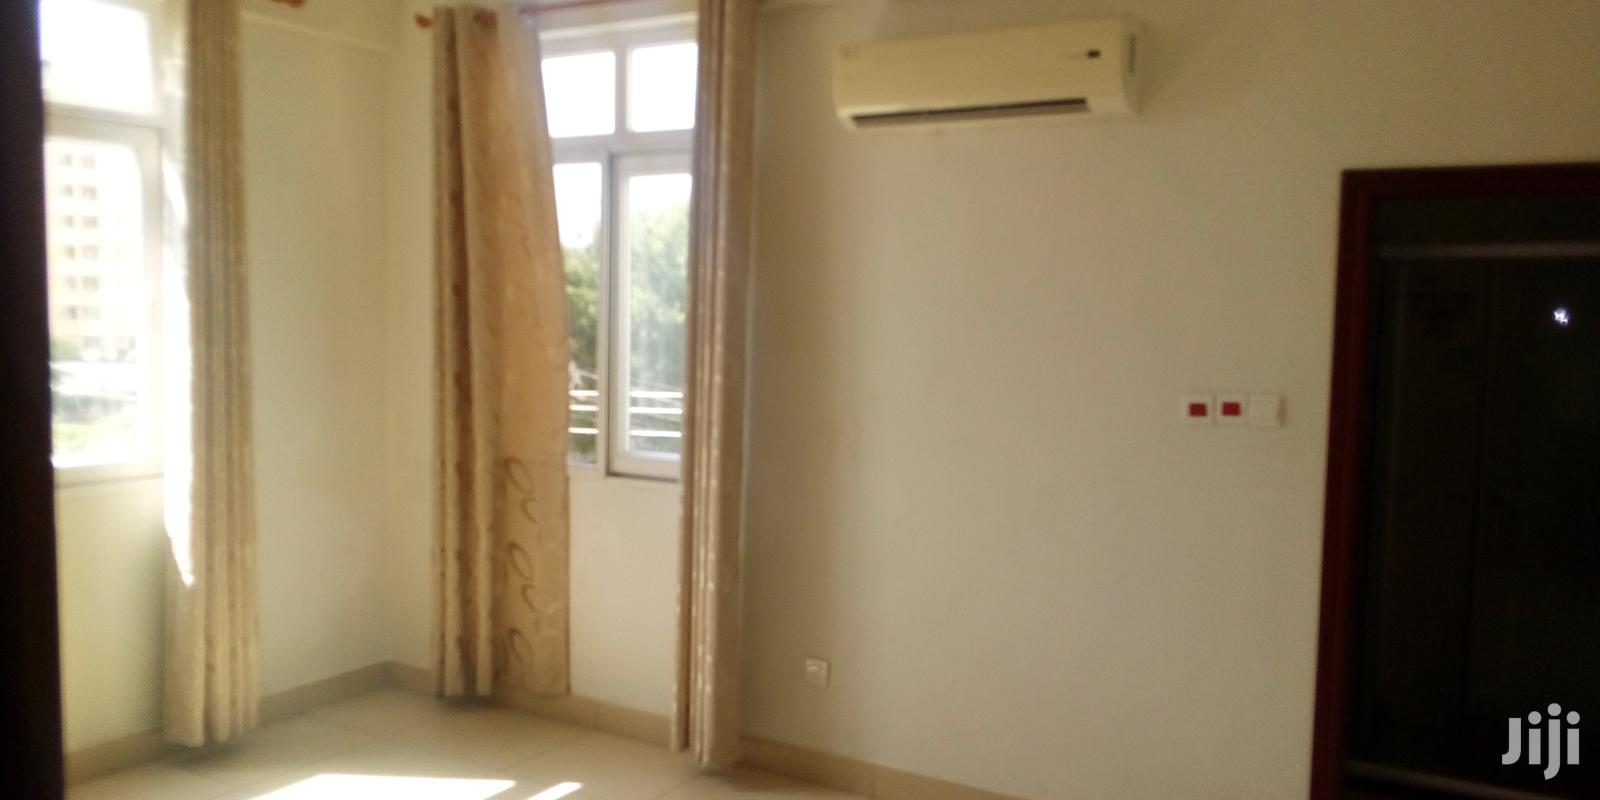 Luxury 4 Bedrooms Fully Furnished Apartment For Rent At Masaki | Houses & Apartments For Rent for sale in Kinondoni, Dar es Salaam, Tanzania